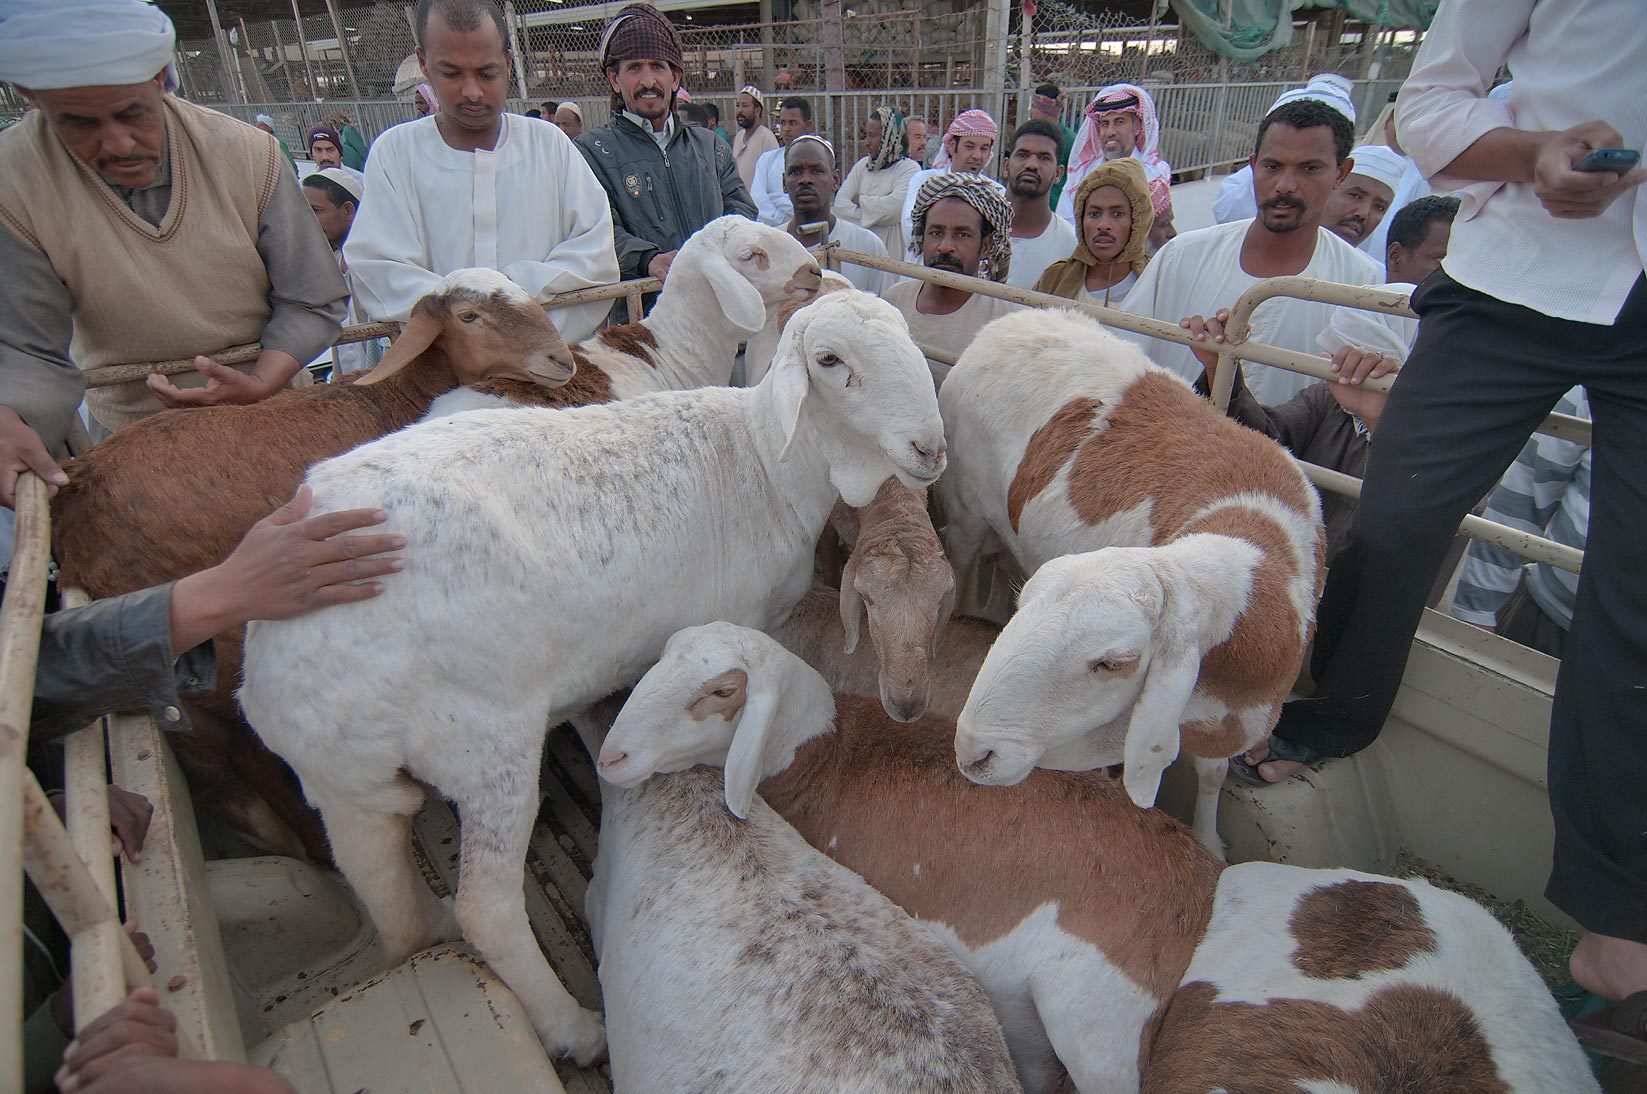 Goat auction at animal market. Doha, Qatar